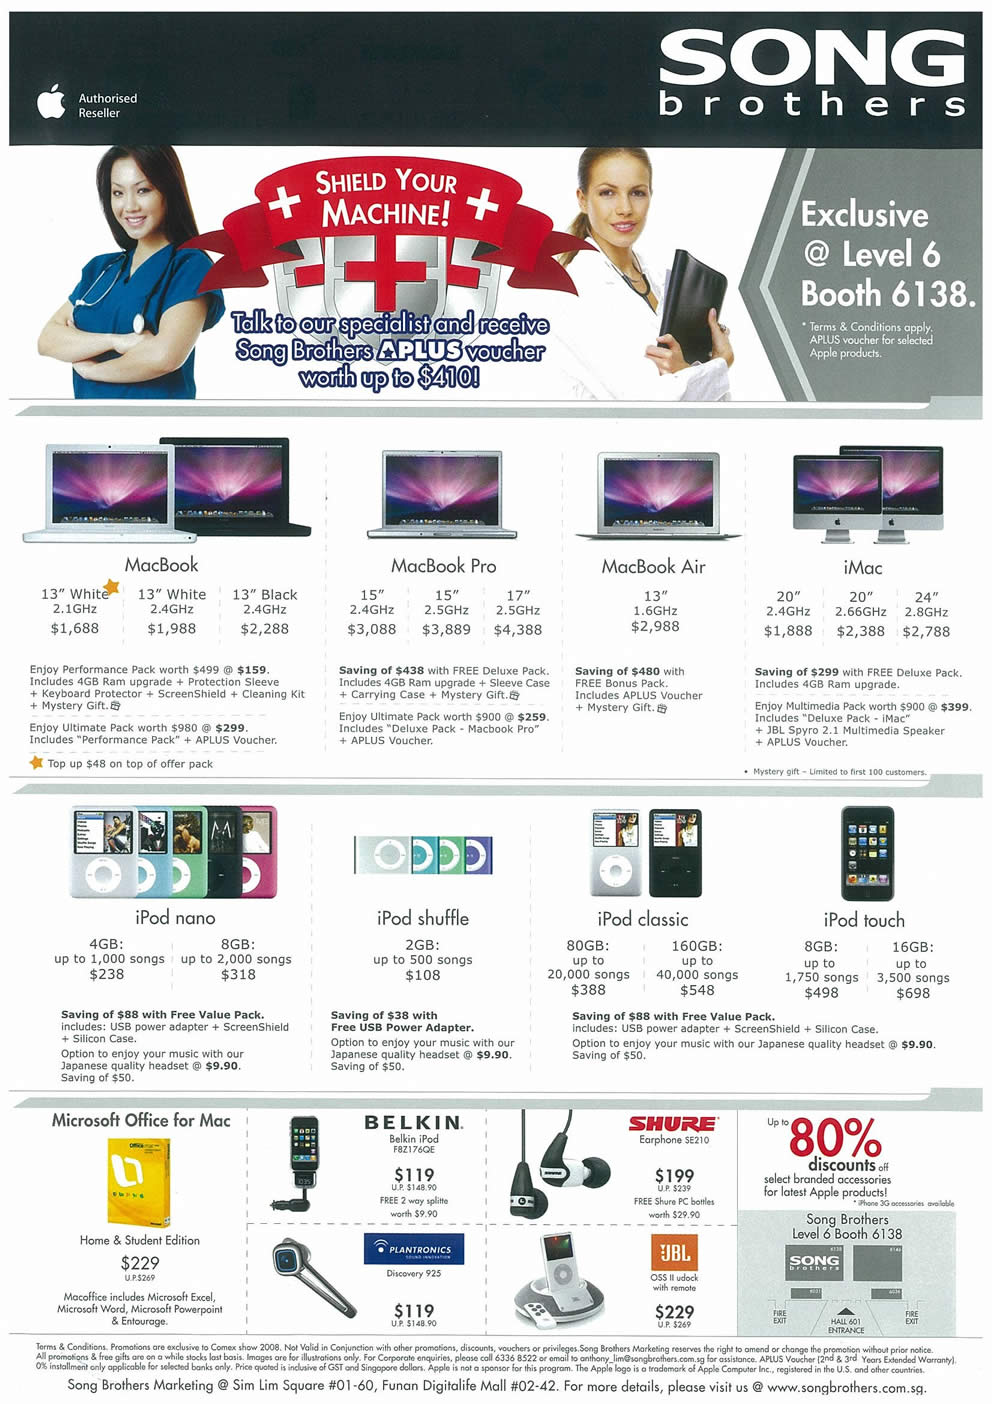 Comex 2008 price list image brochure of Apple Song Brothers